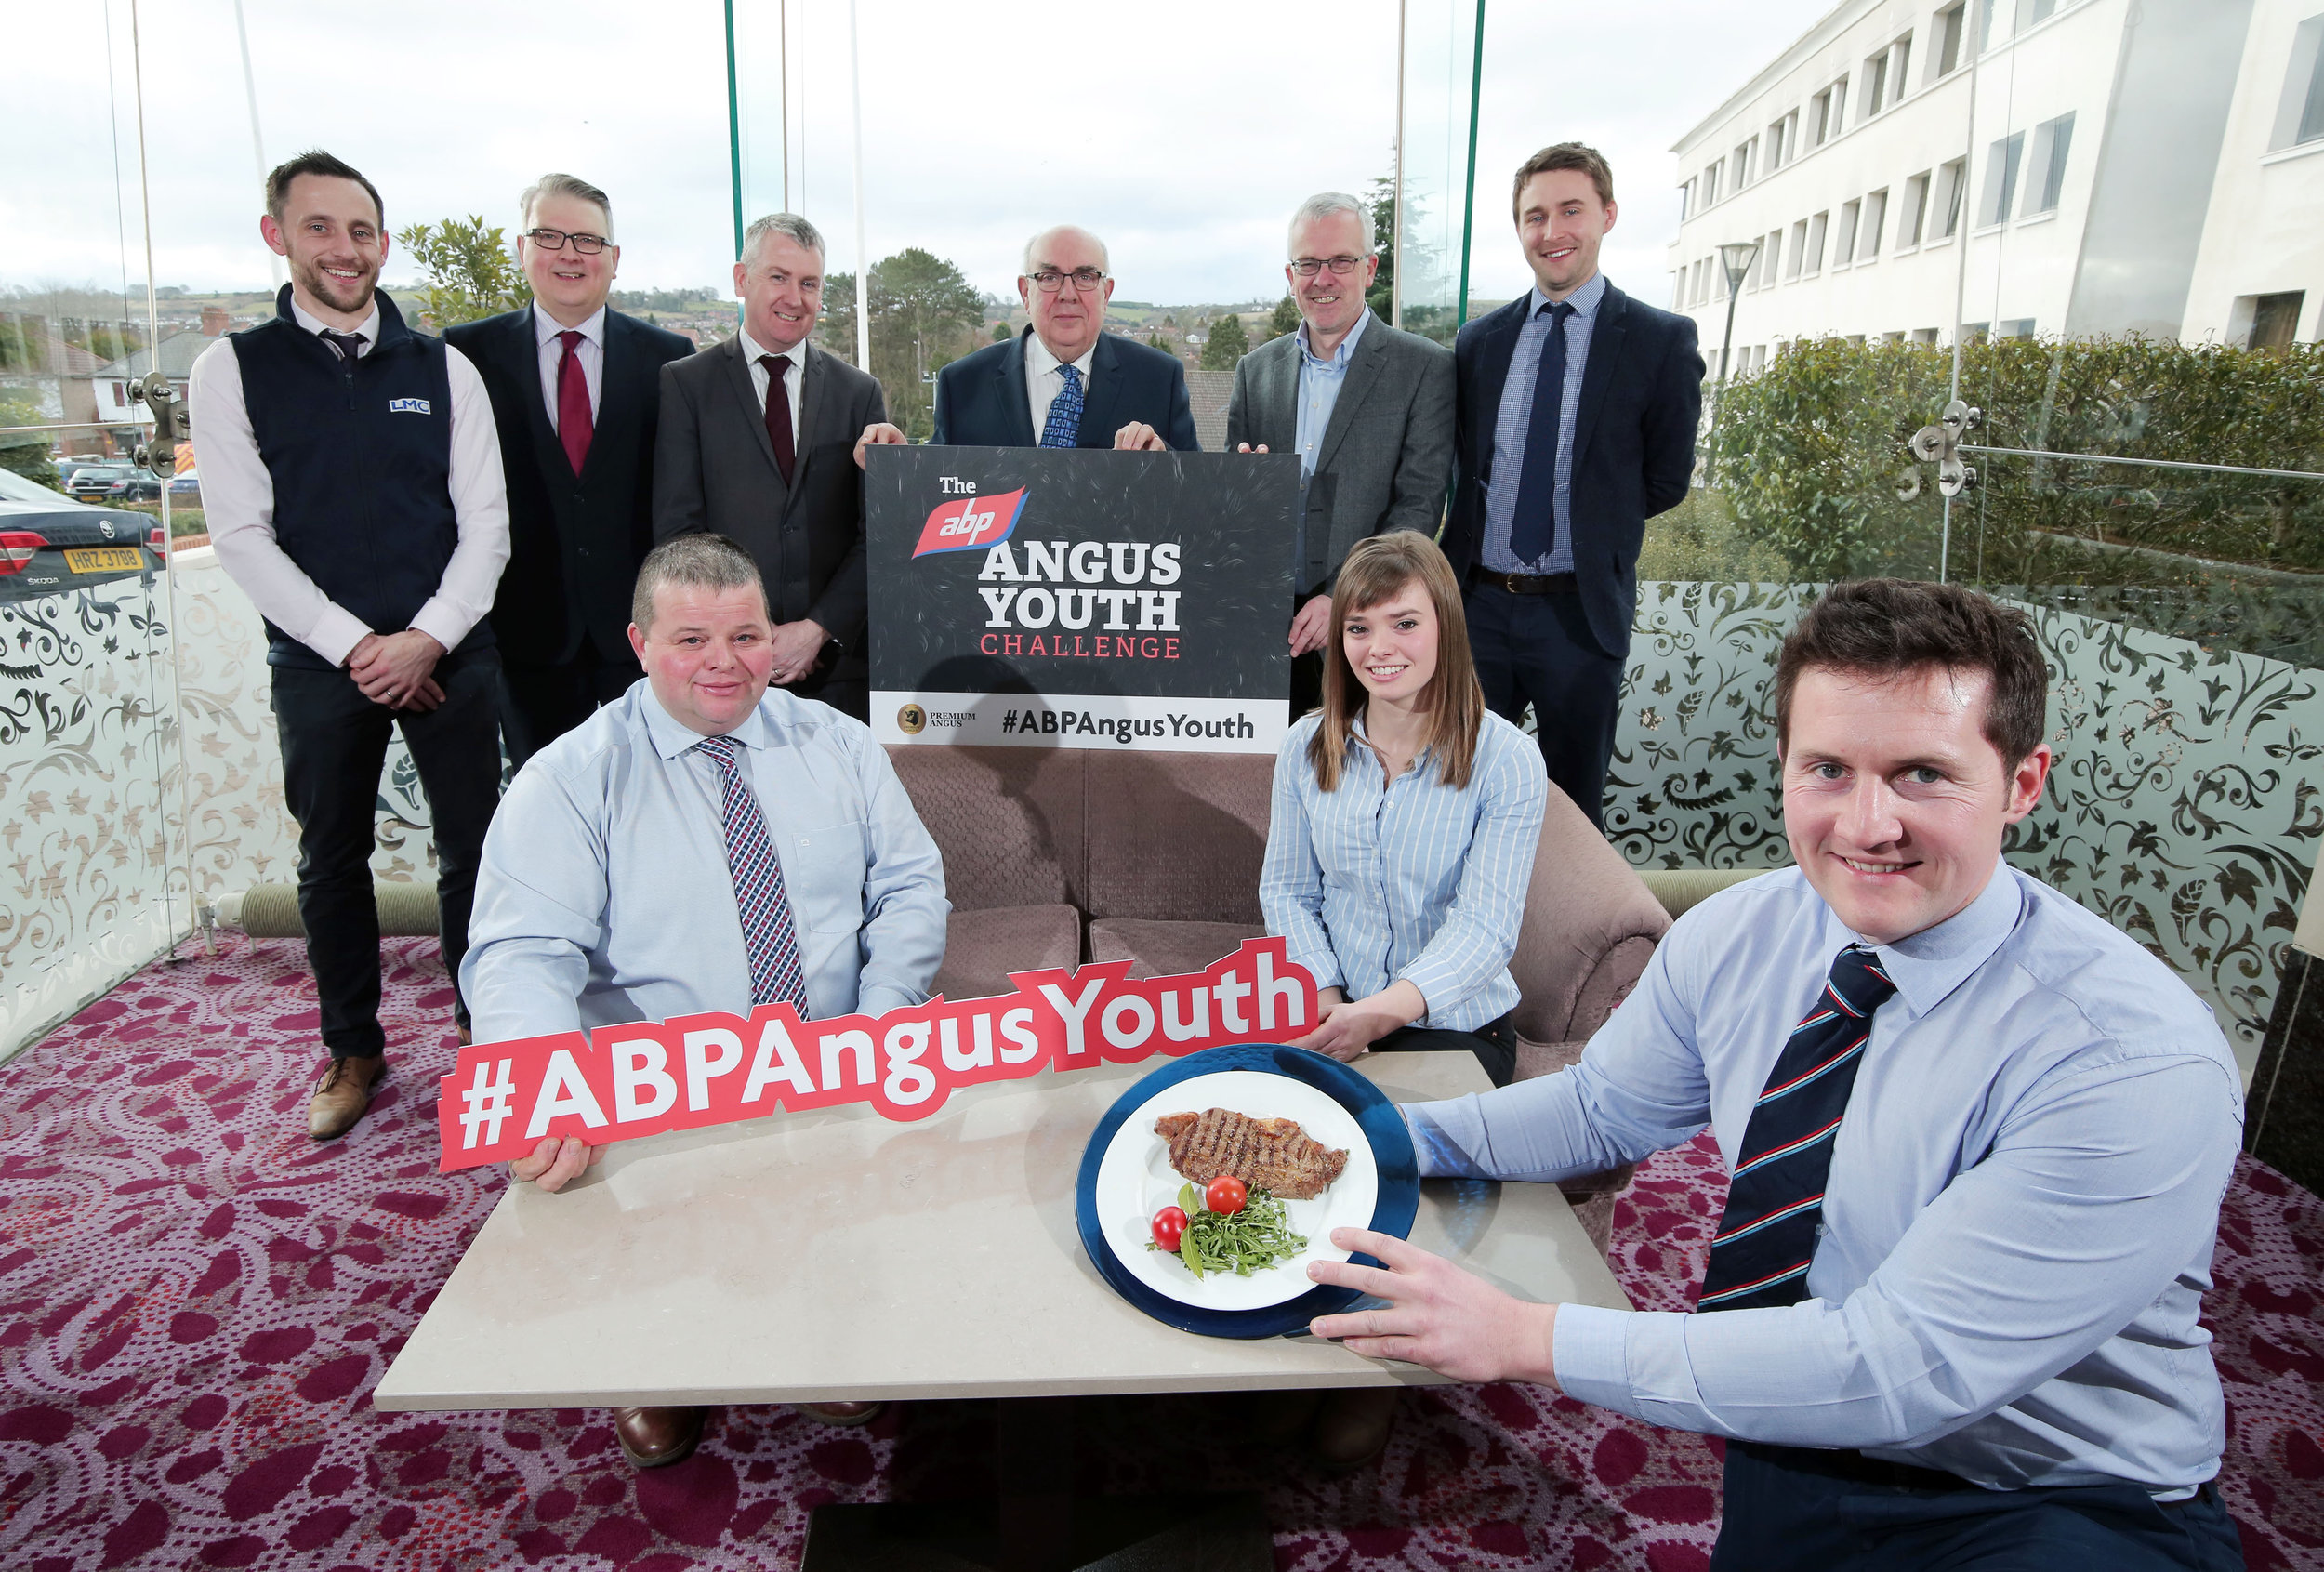 Thank you to all our judges who took part in the 2018 semi-final. We had a great mix of experts from farming, business and agricultural advisory bodies as well as academia and the journalism. The organisations they represented included: the Livestock and Meat Commission; CAFRE; AgriSearch, Ulster Farmers Union; Zoetis, the Agri-Food Biosciences Institute; the Irish Farmers Journal Country Living Magazine, Young Farmers Clubs of Ulster and CCEA.